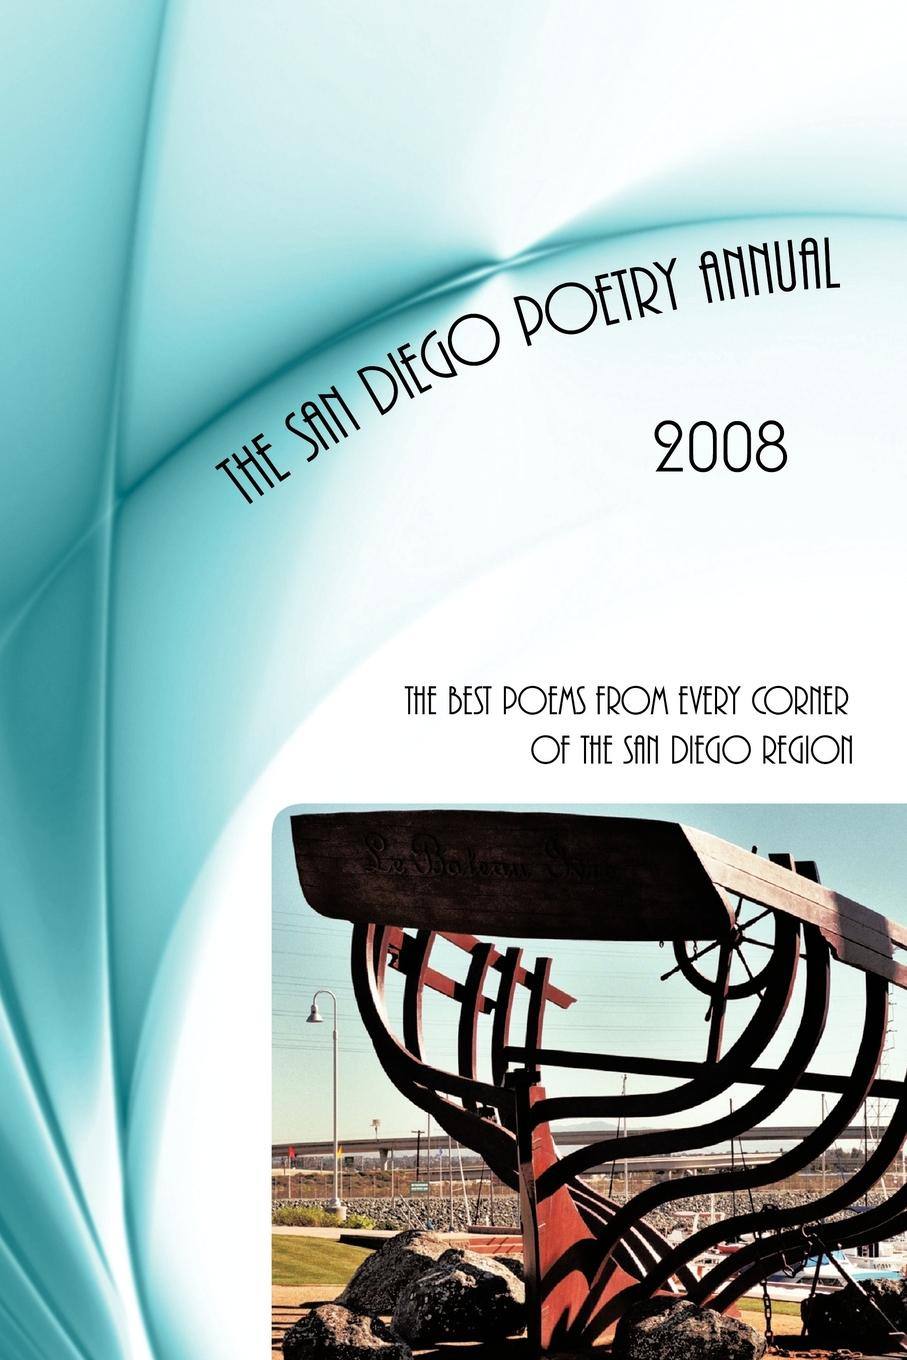 Фото - publisher William Harry Harding San Diego Poetry Annual -- 2008. The best poems from every corner of the San Diego region alice san diego pубашка